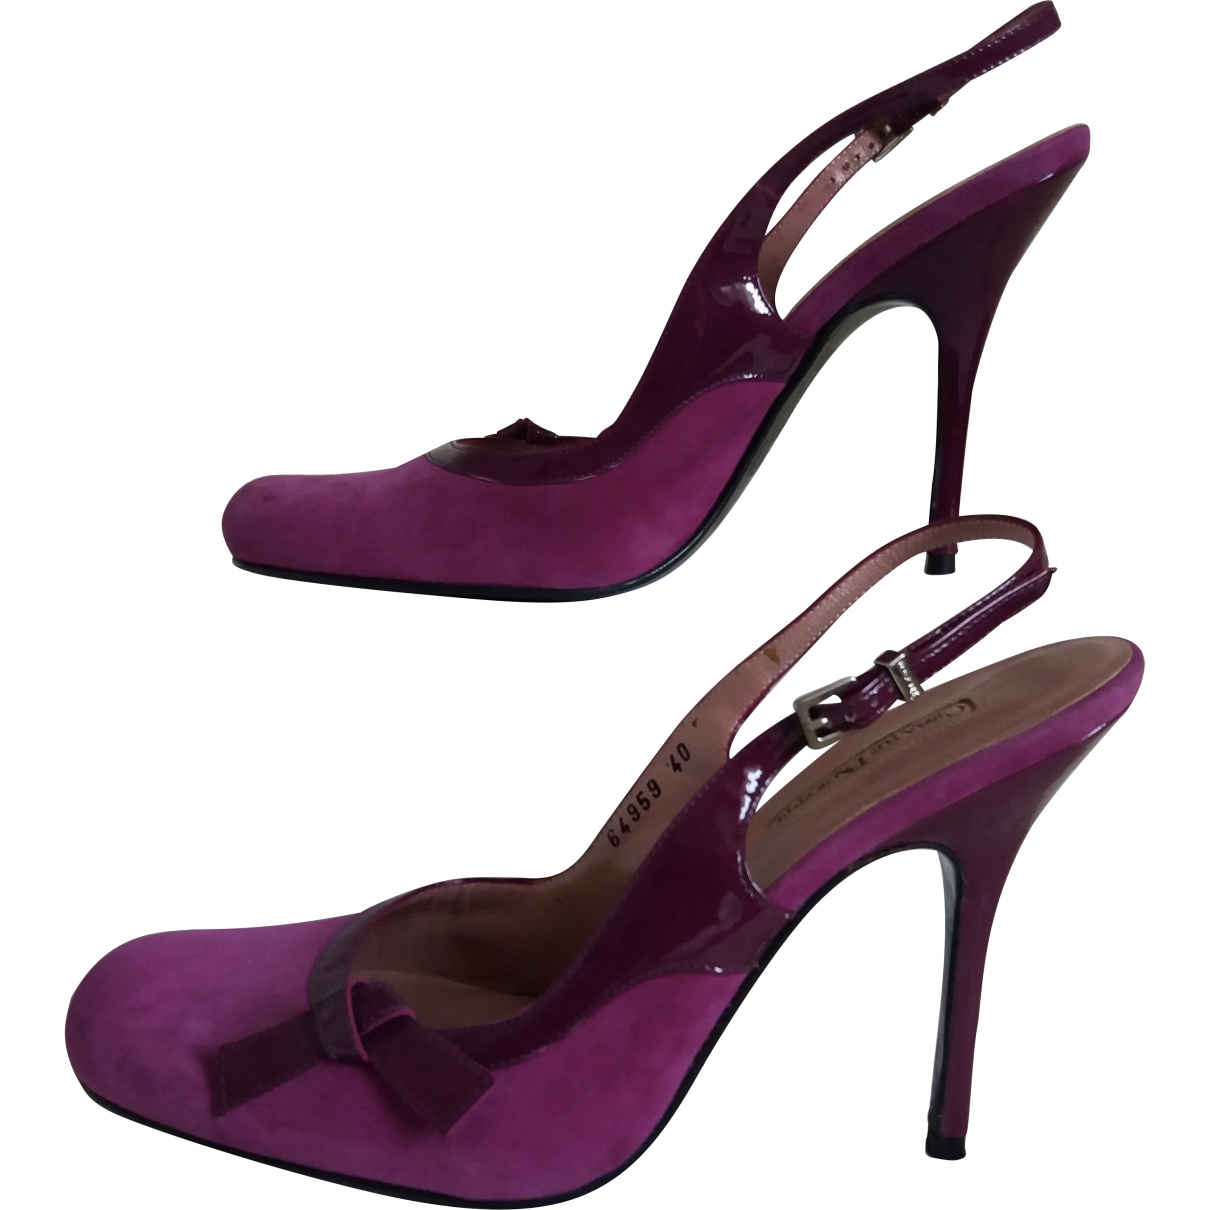 Cesare Paciotti \N Purple Suede Heels for Women 40 EU